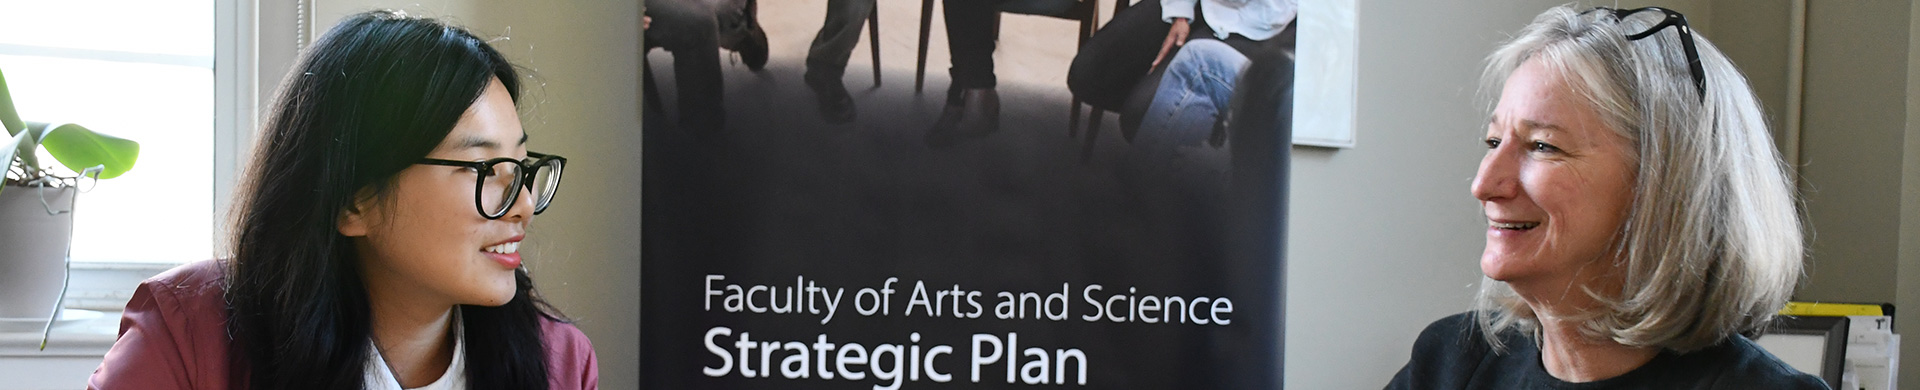 Student Kate Li and Arts Sci Dean Crow discussing the Strategic Plan